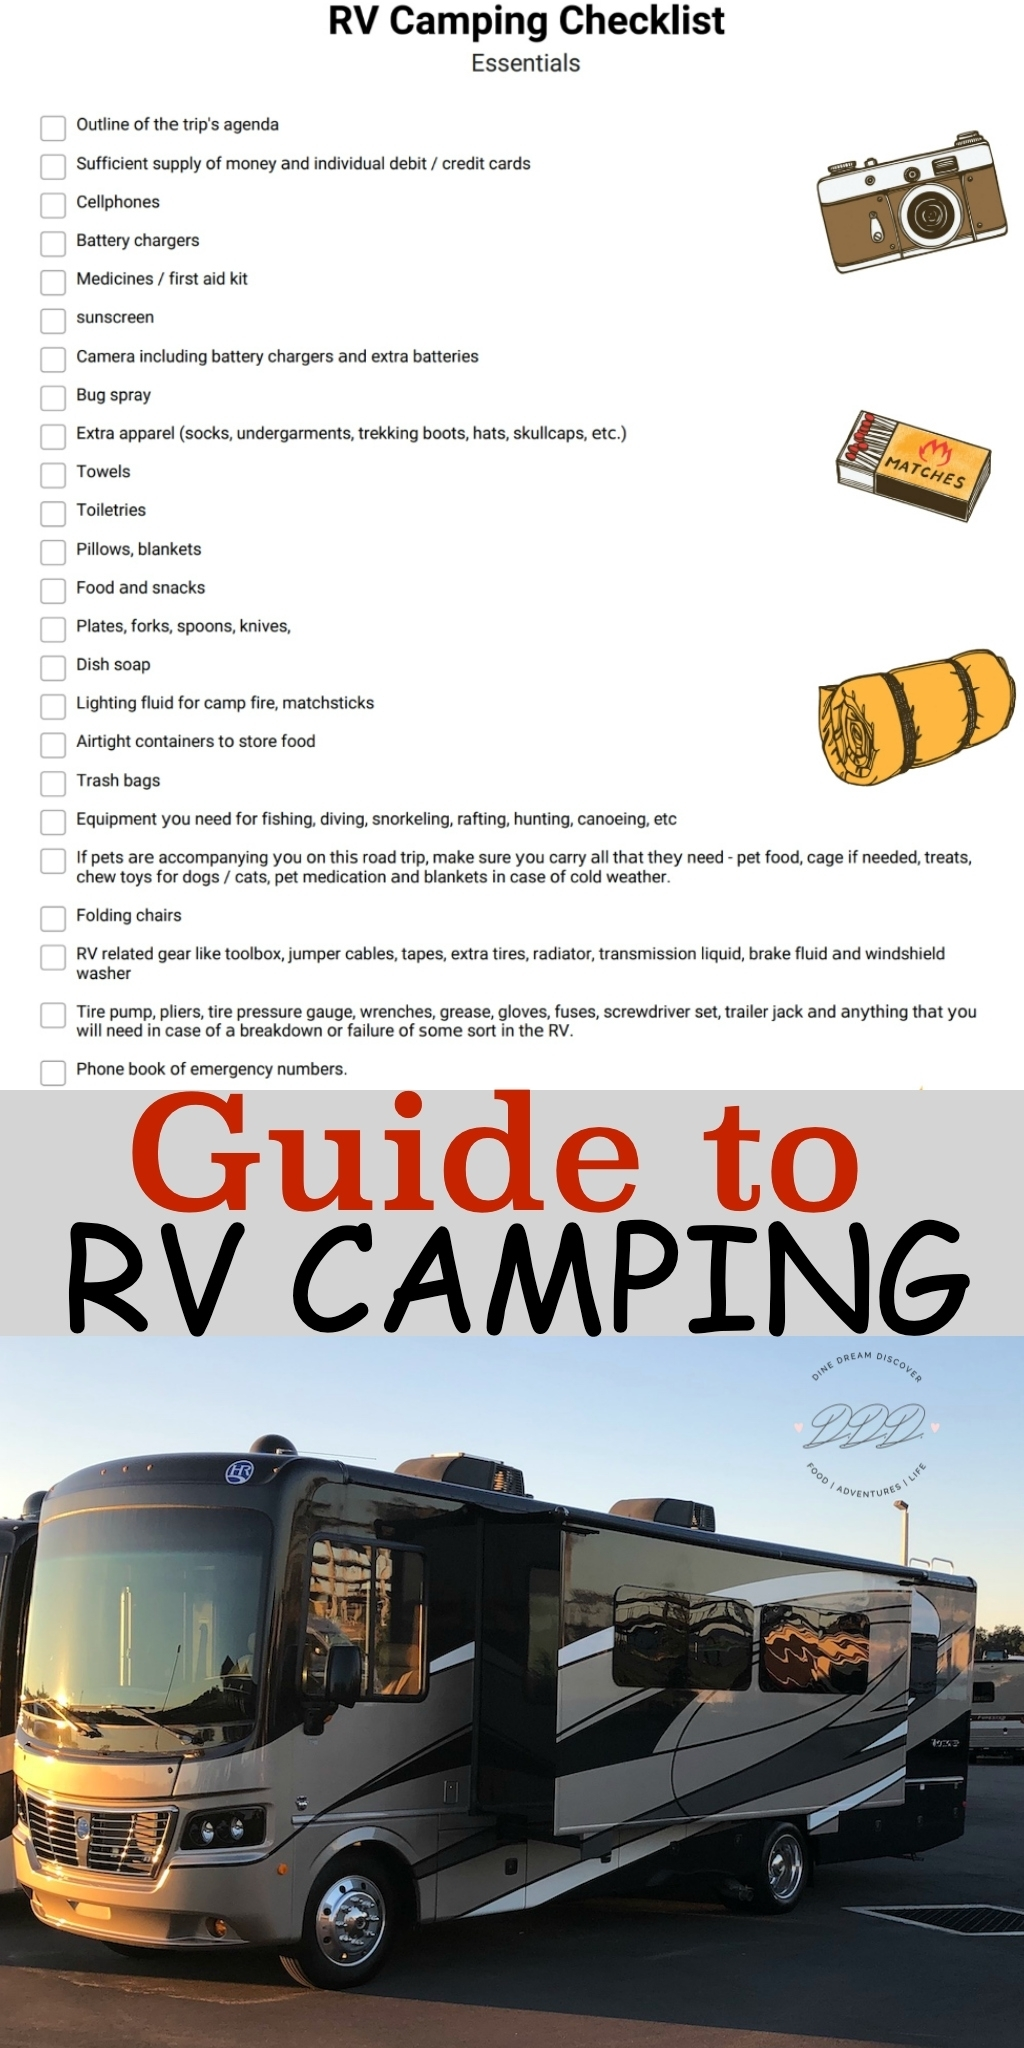 FAMILY GUIDE TO RV CAMPING